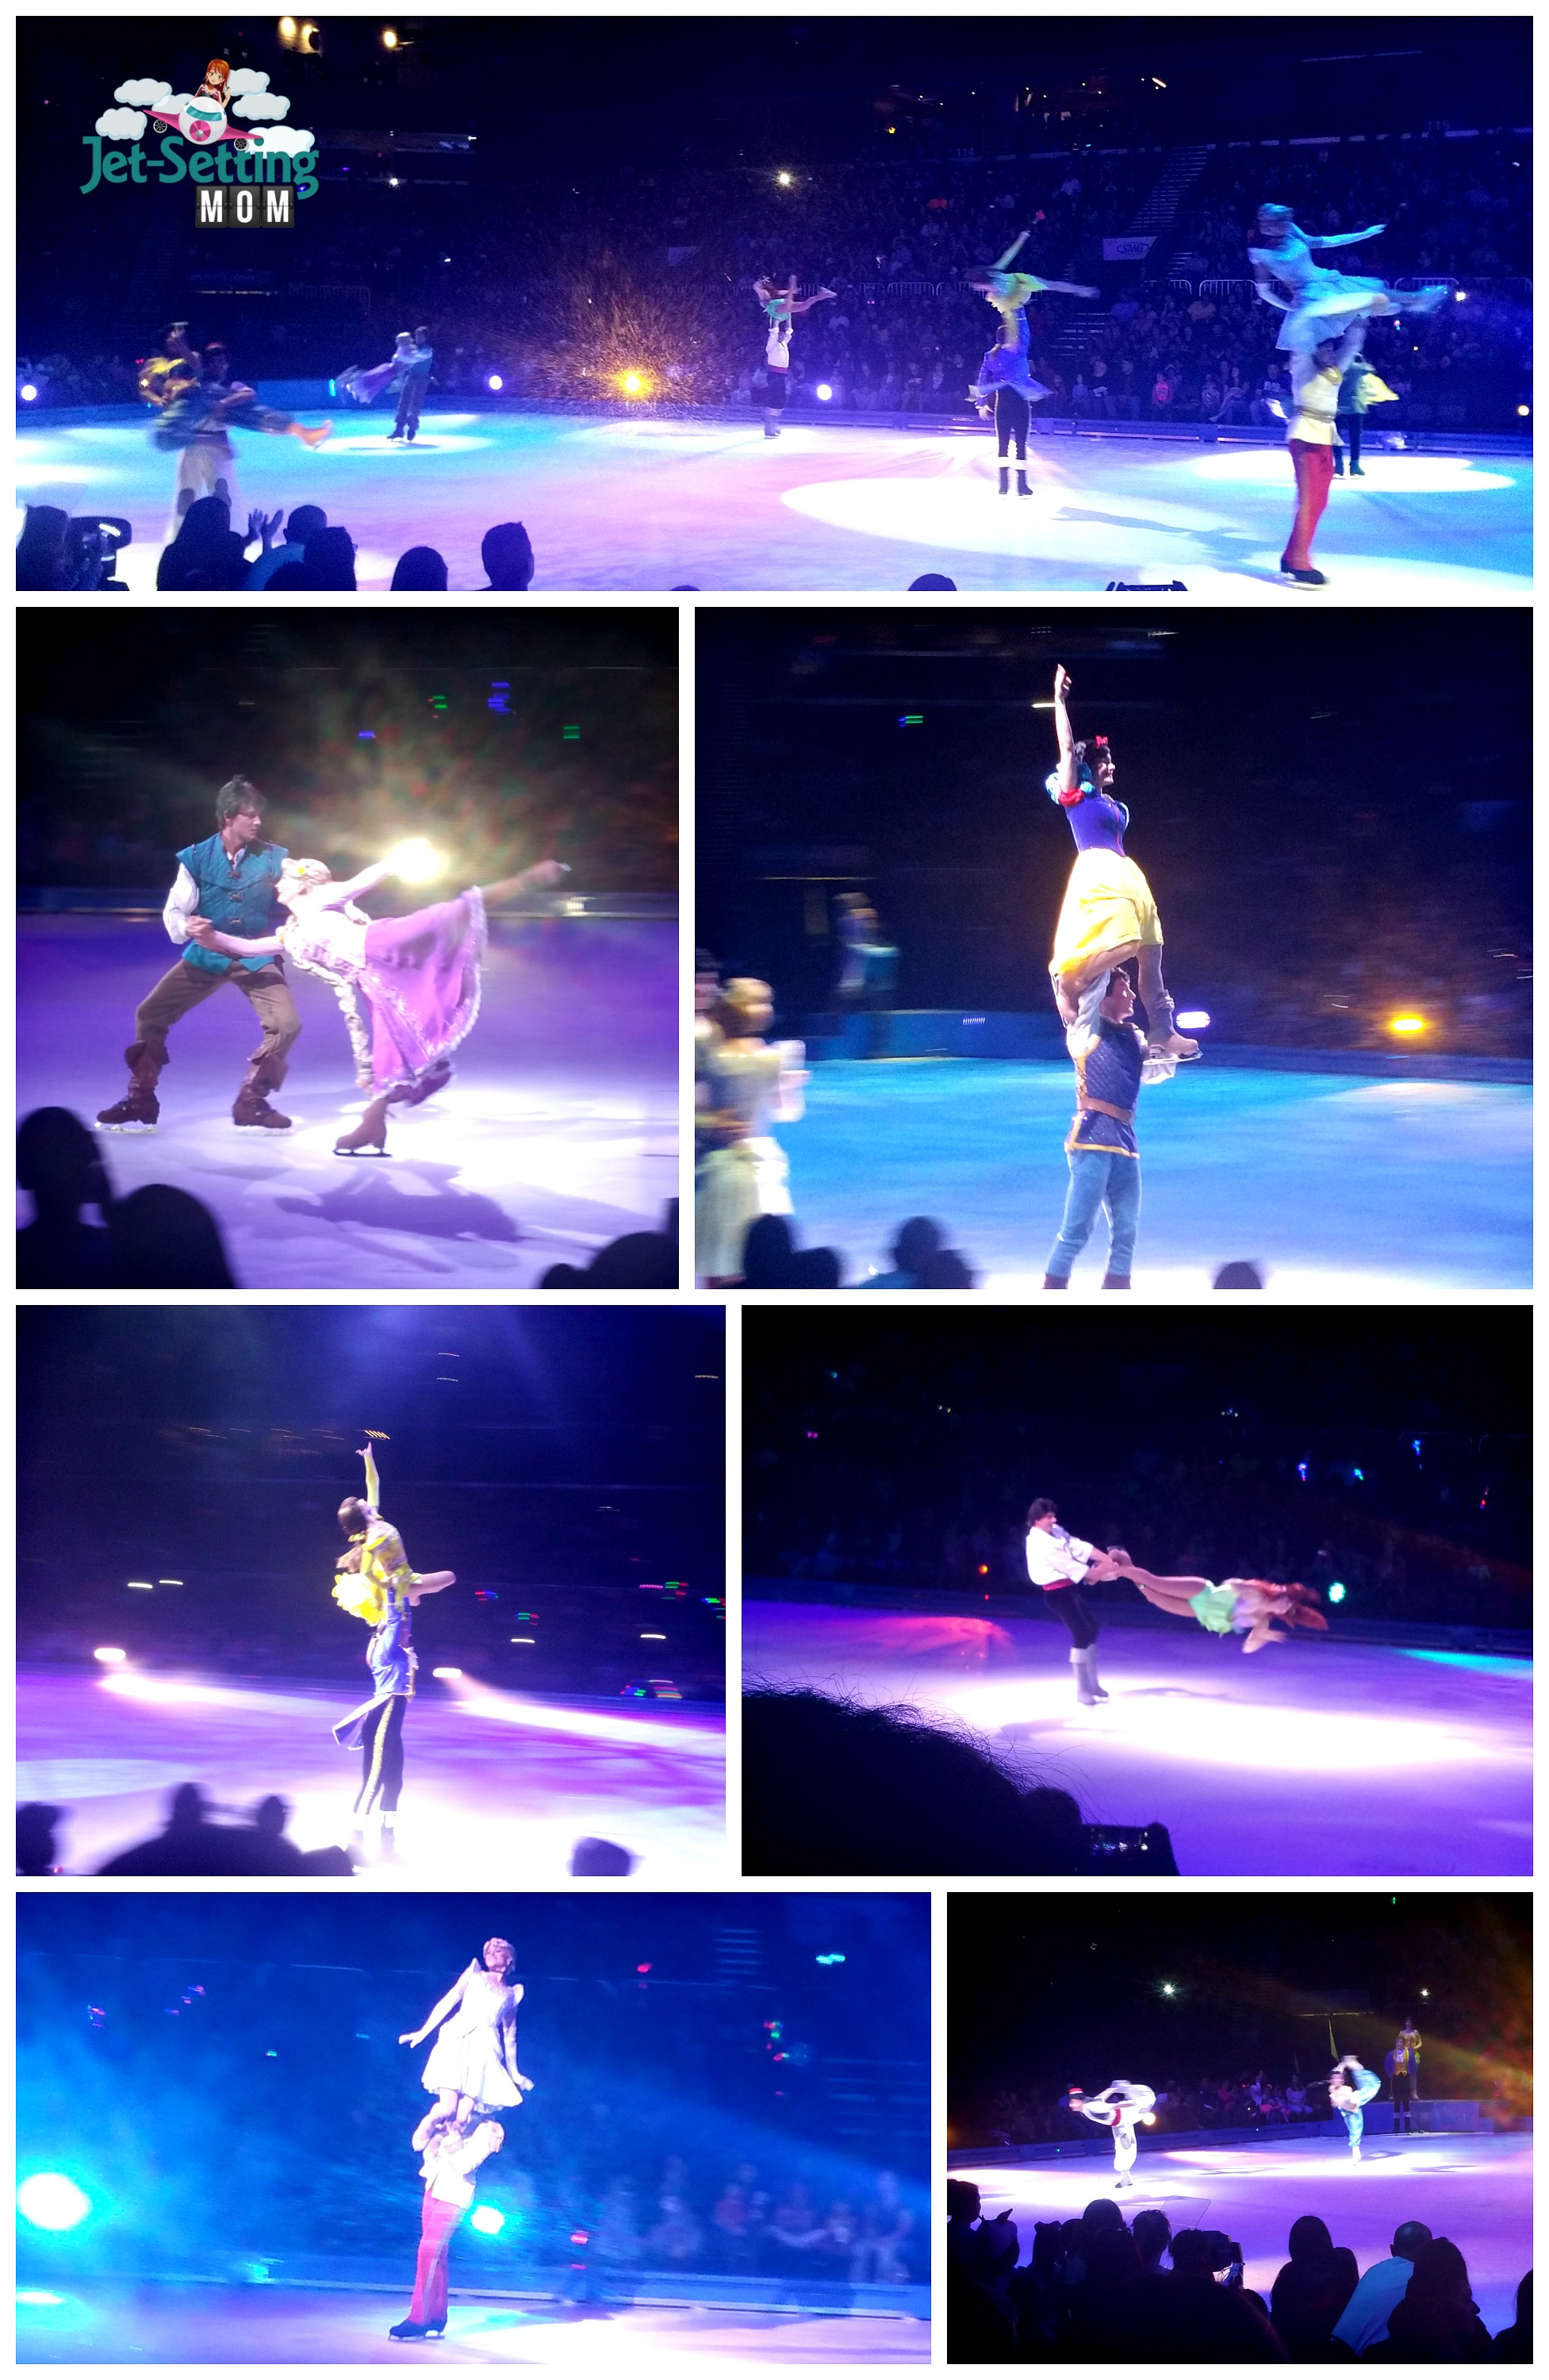 Disney Princesses at Feld Entertainment's Disney On Ice 100 Years Of Magic #disneyonice #disney #travel